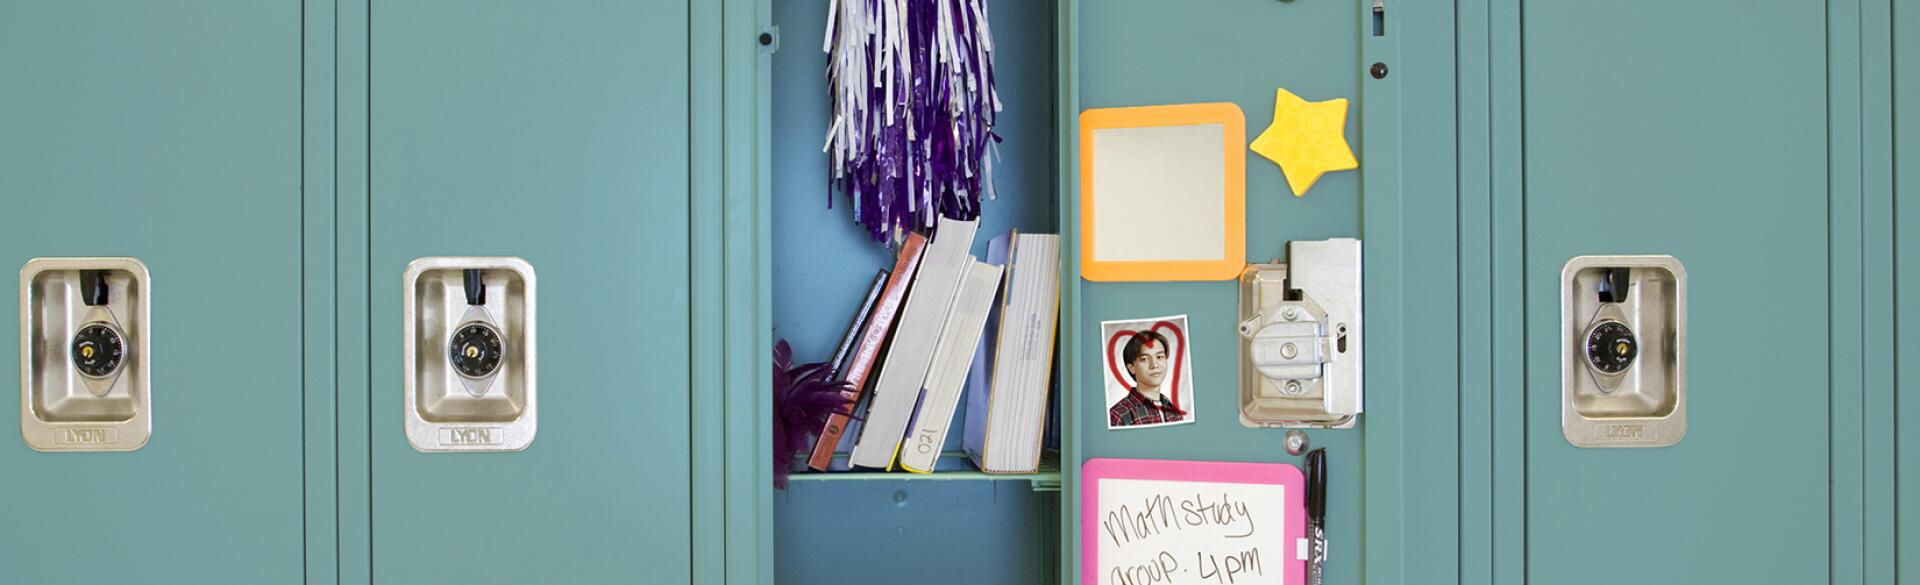 An image of an open high school locker.